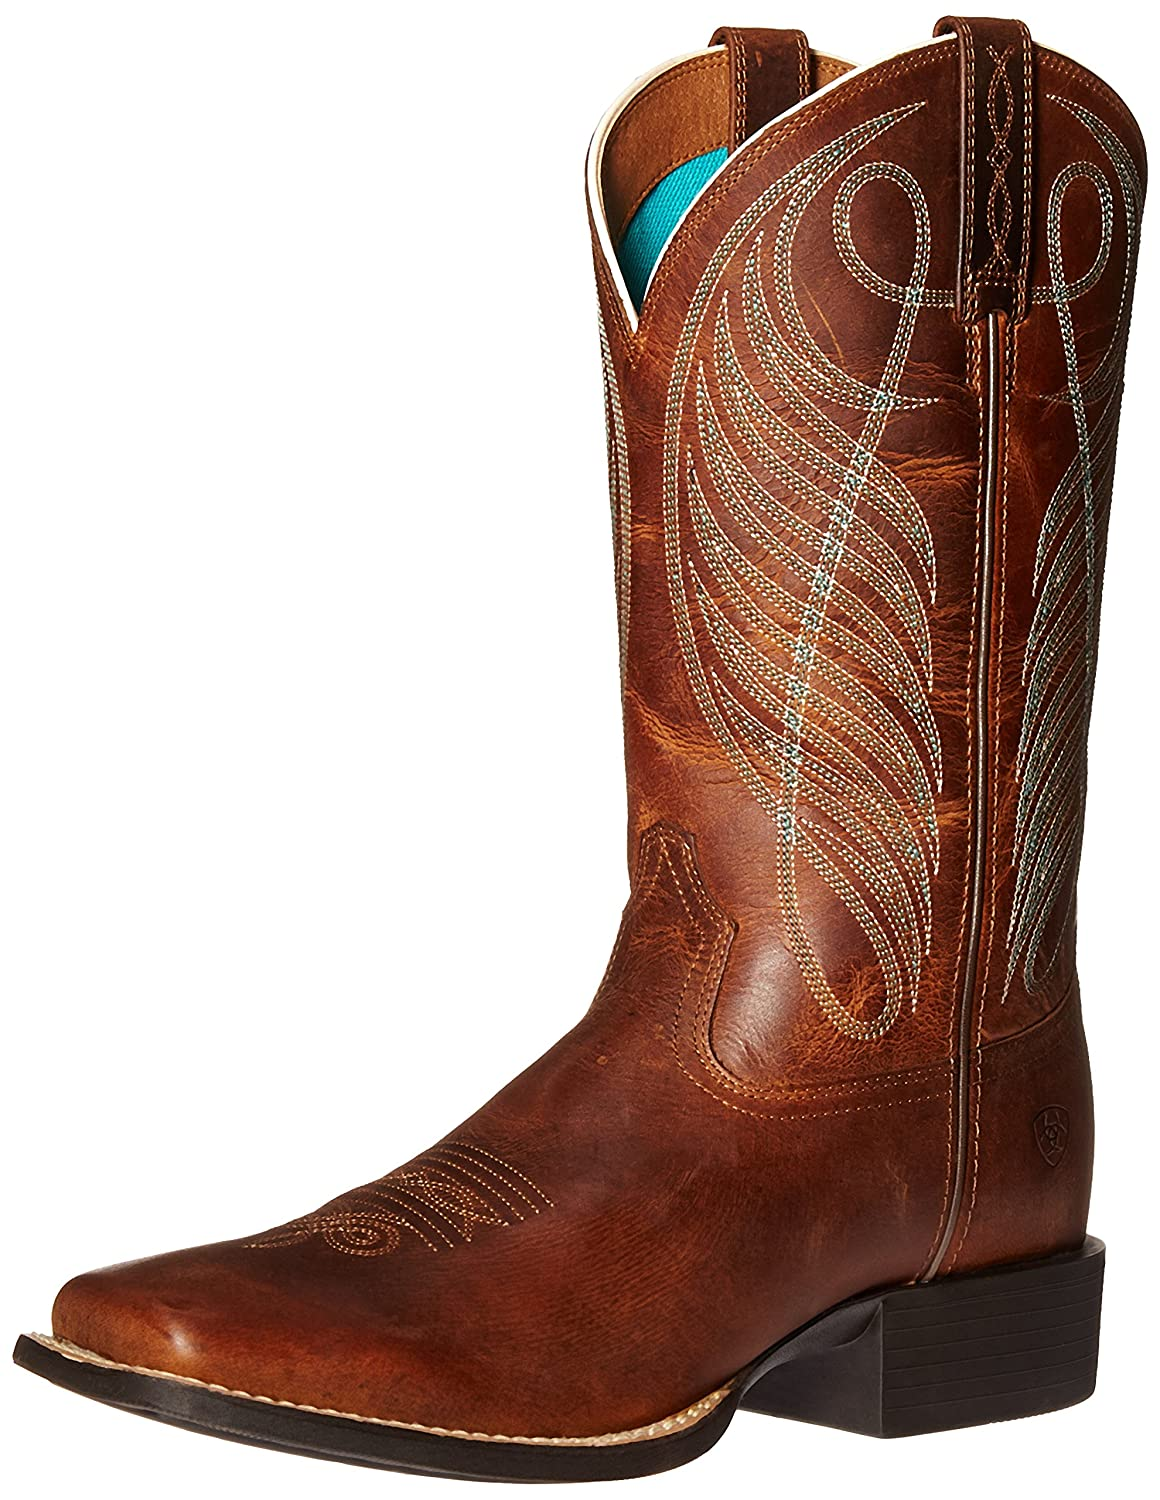 Ariat Women's Round up Wide Square Toe Western Cowboy Boot B01BPW9L8I 7.5 B(M) US|Powder Brown